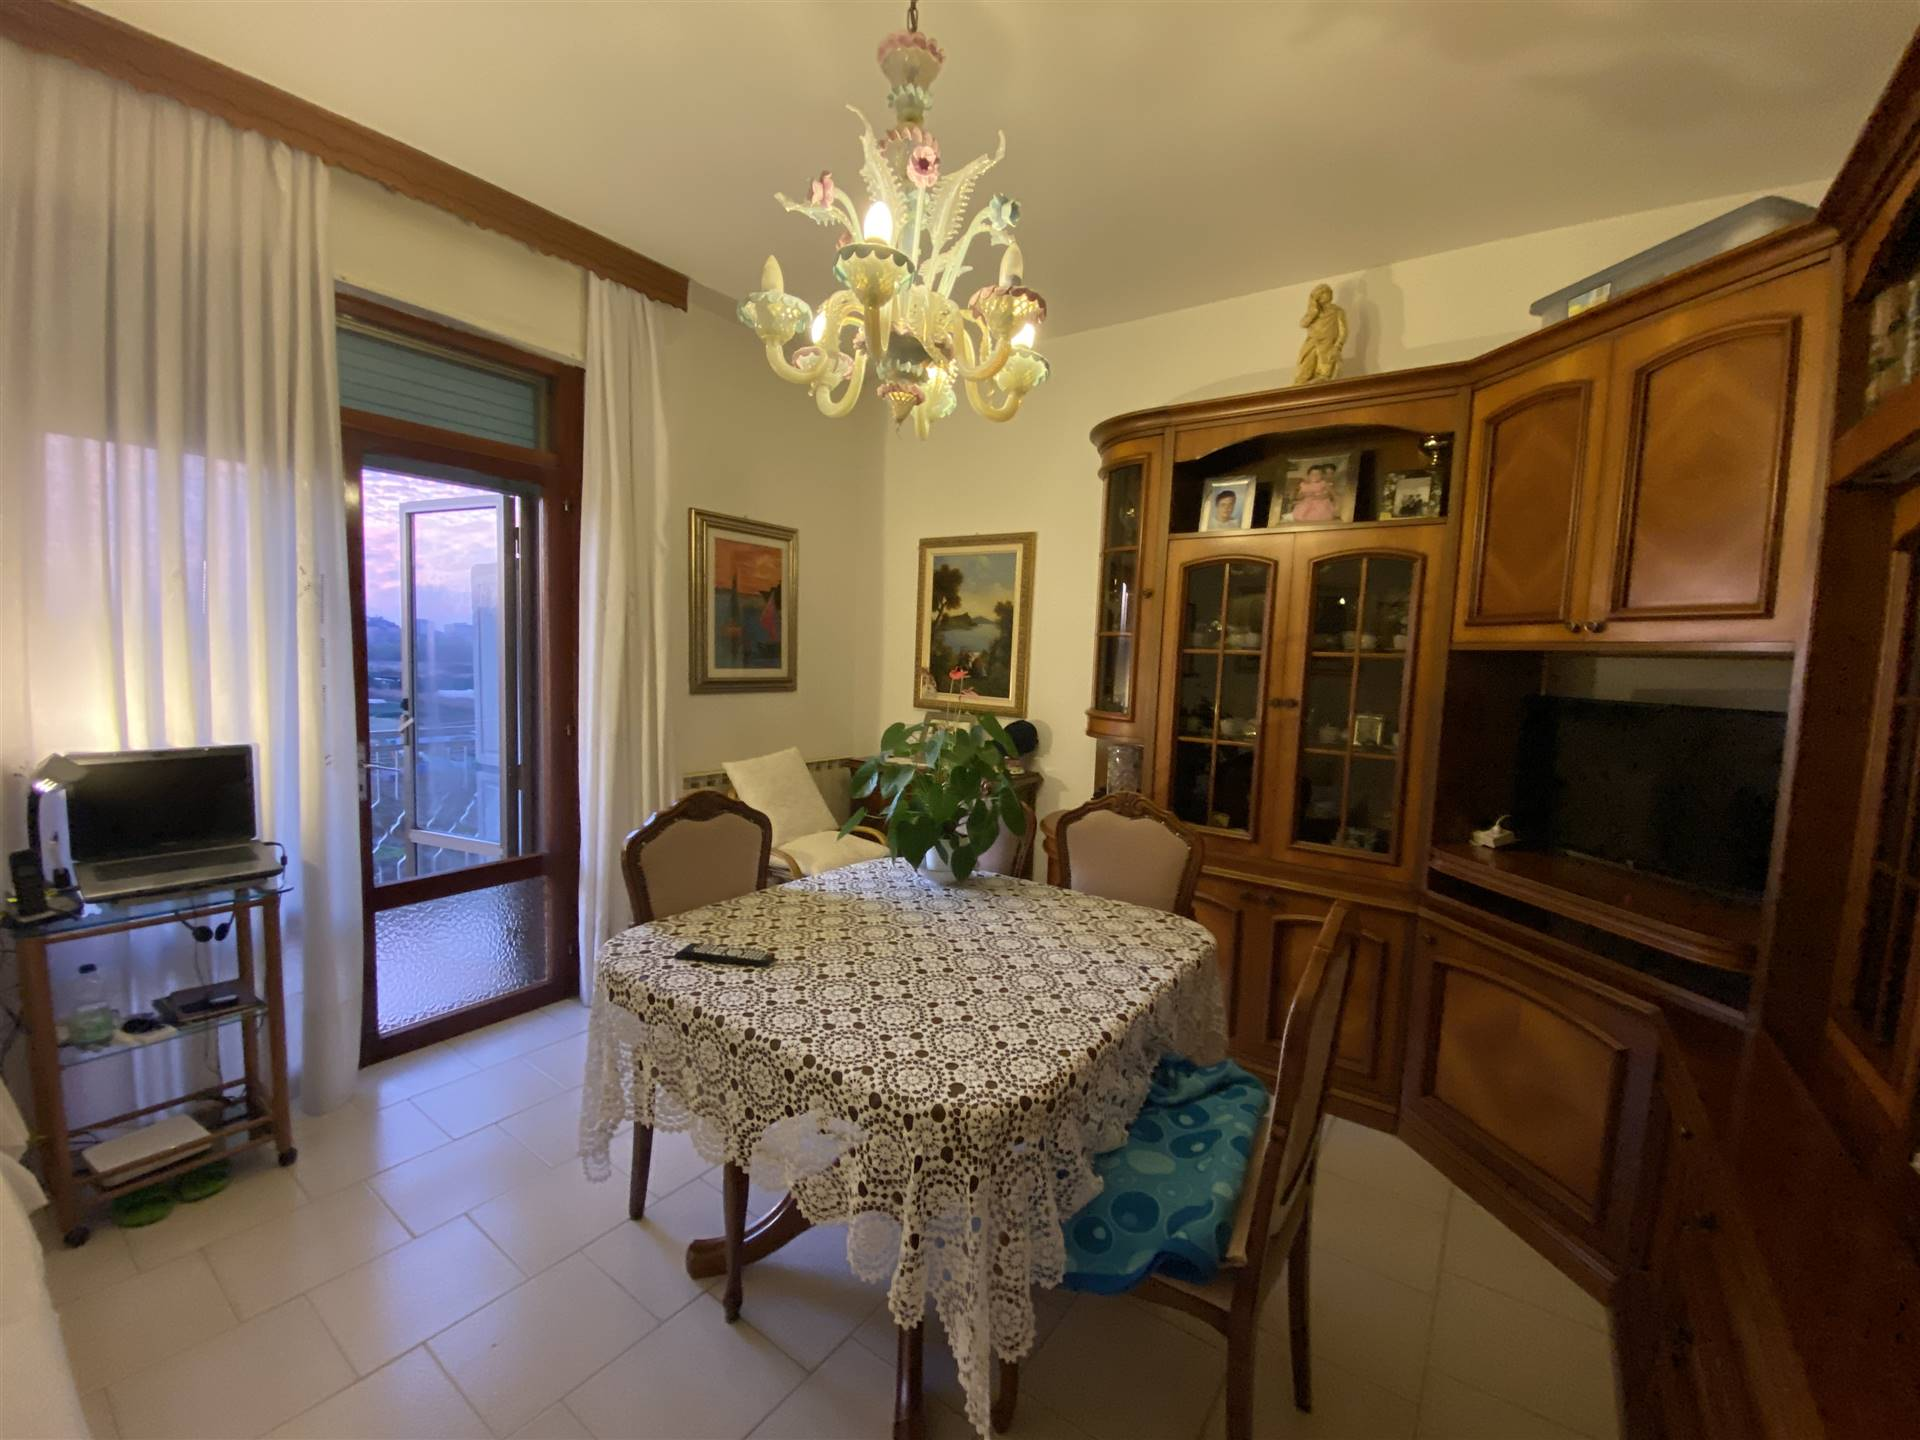 SOTTOMARINA, CHIOGGIA, Apartment for sale of 50 Sq. mt., Habitable, Heating Individual heating system, Energetic class: G, placed at 2°, composed by: